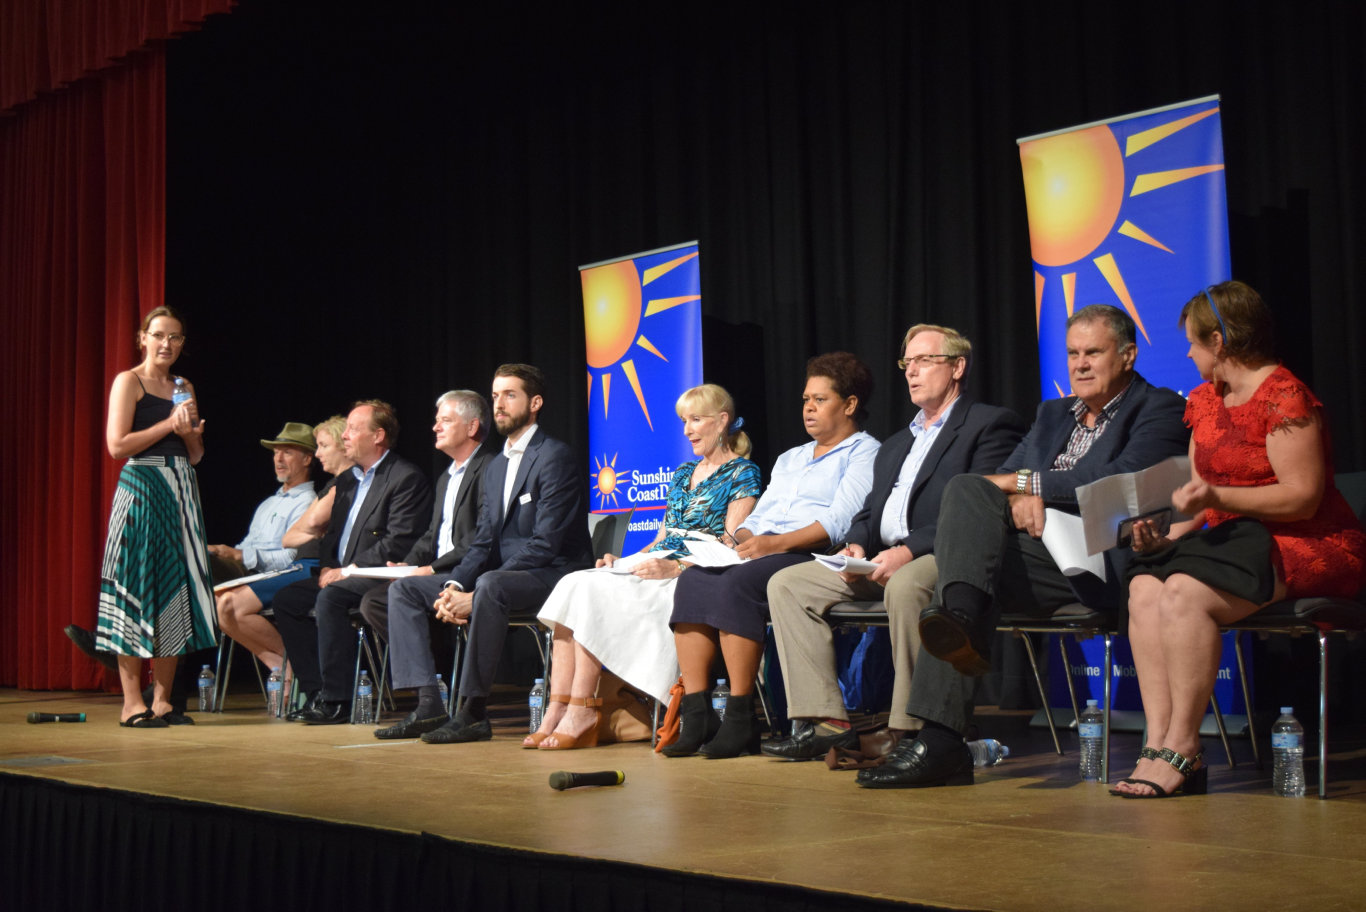 Sunshine Coast Daily editor Nadja Fleet speaks with Division 5 candidates at the Sunshine Coast Daily's election forum in Maleny.